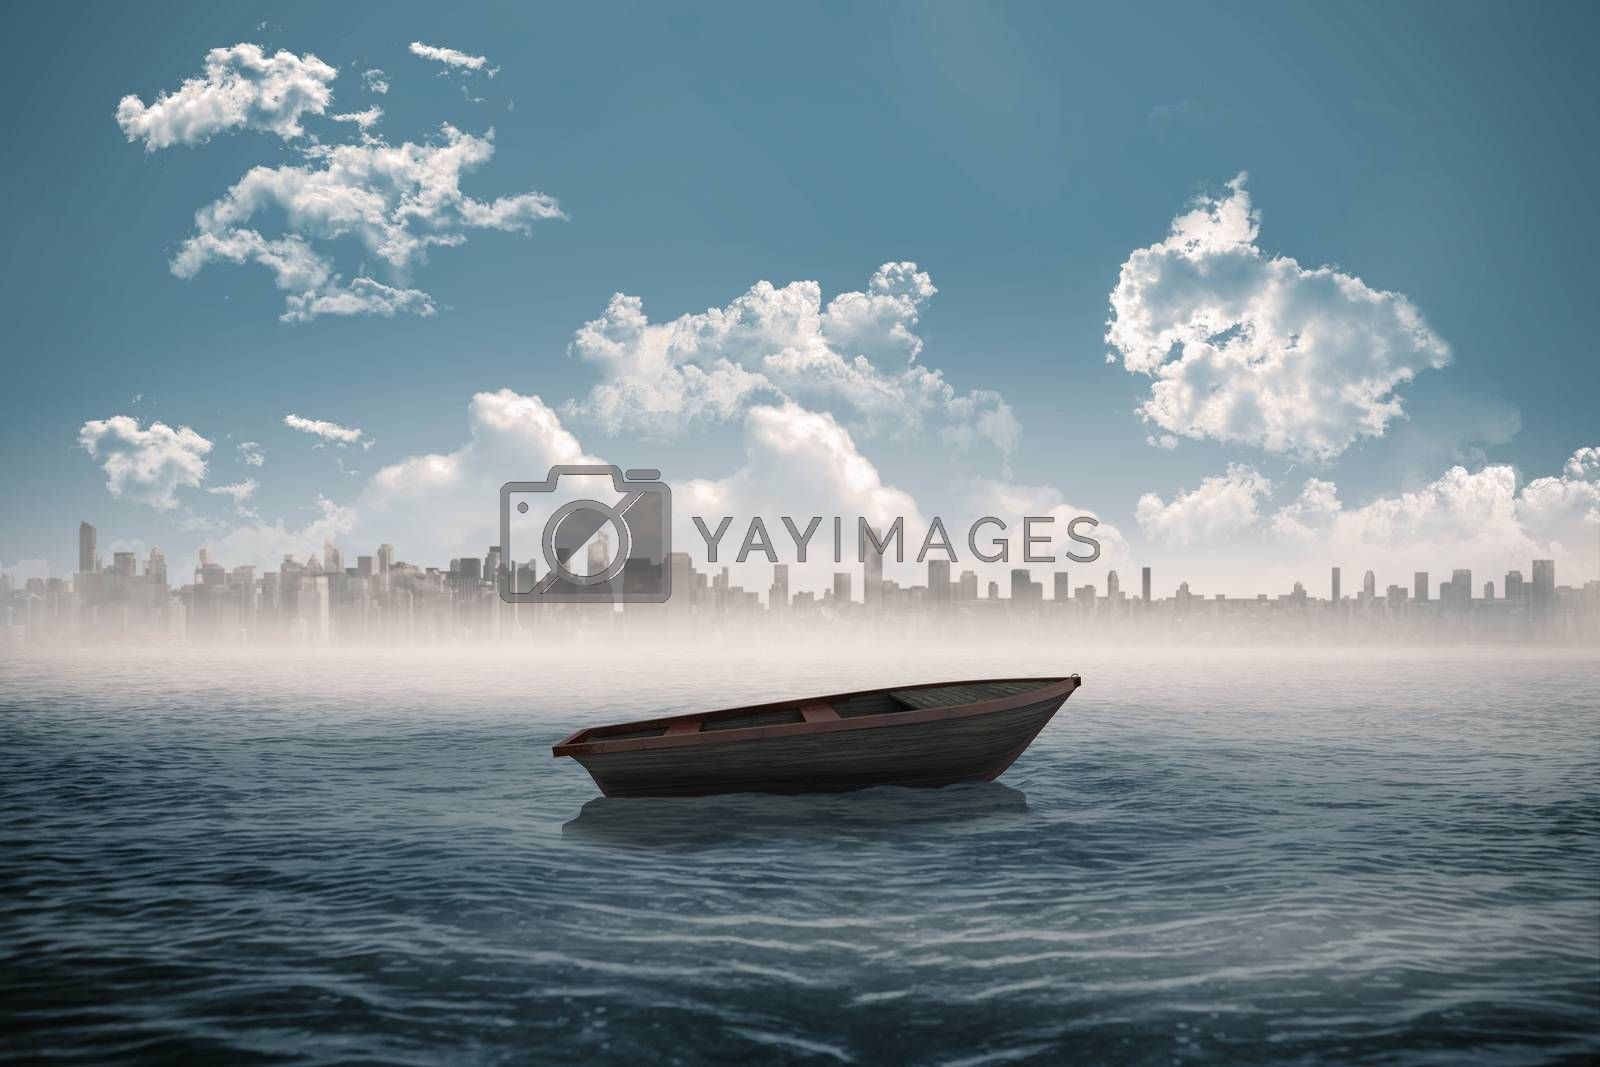 Royalty free image of Small boat in the sea with city on horizon by Wavebreakmedia